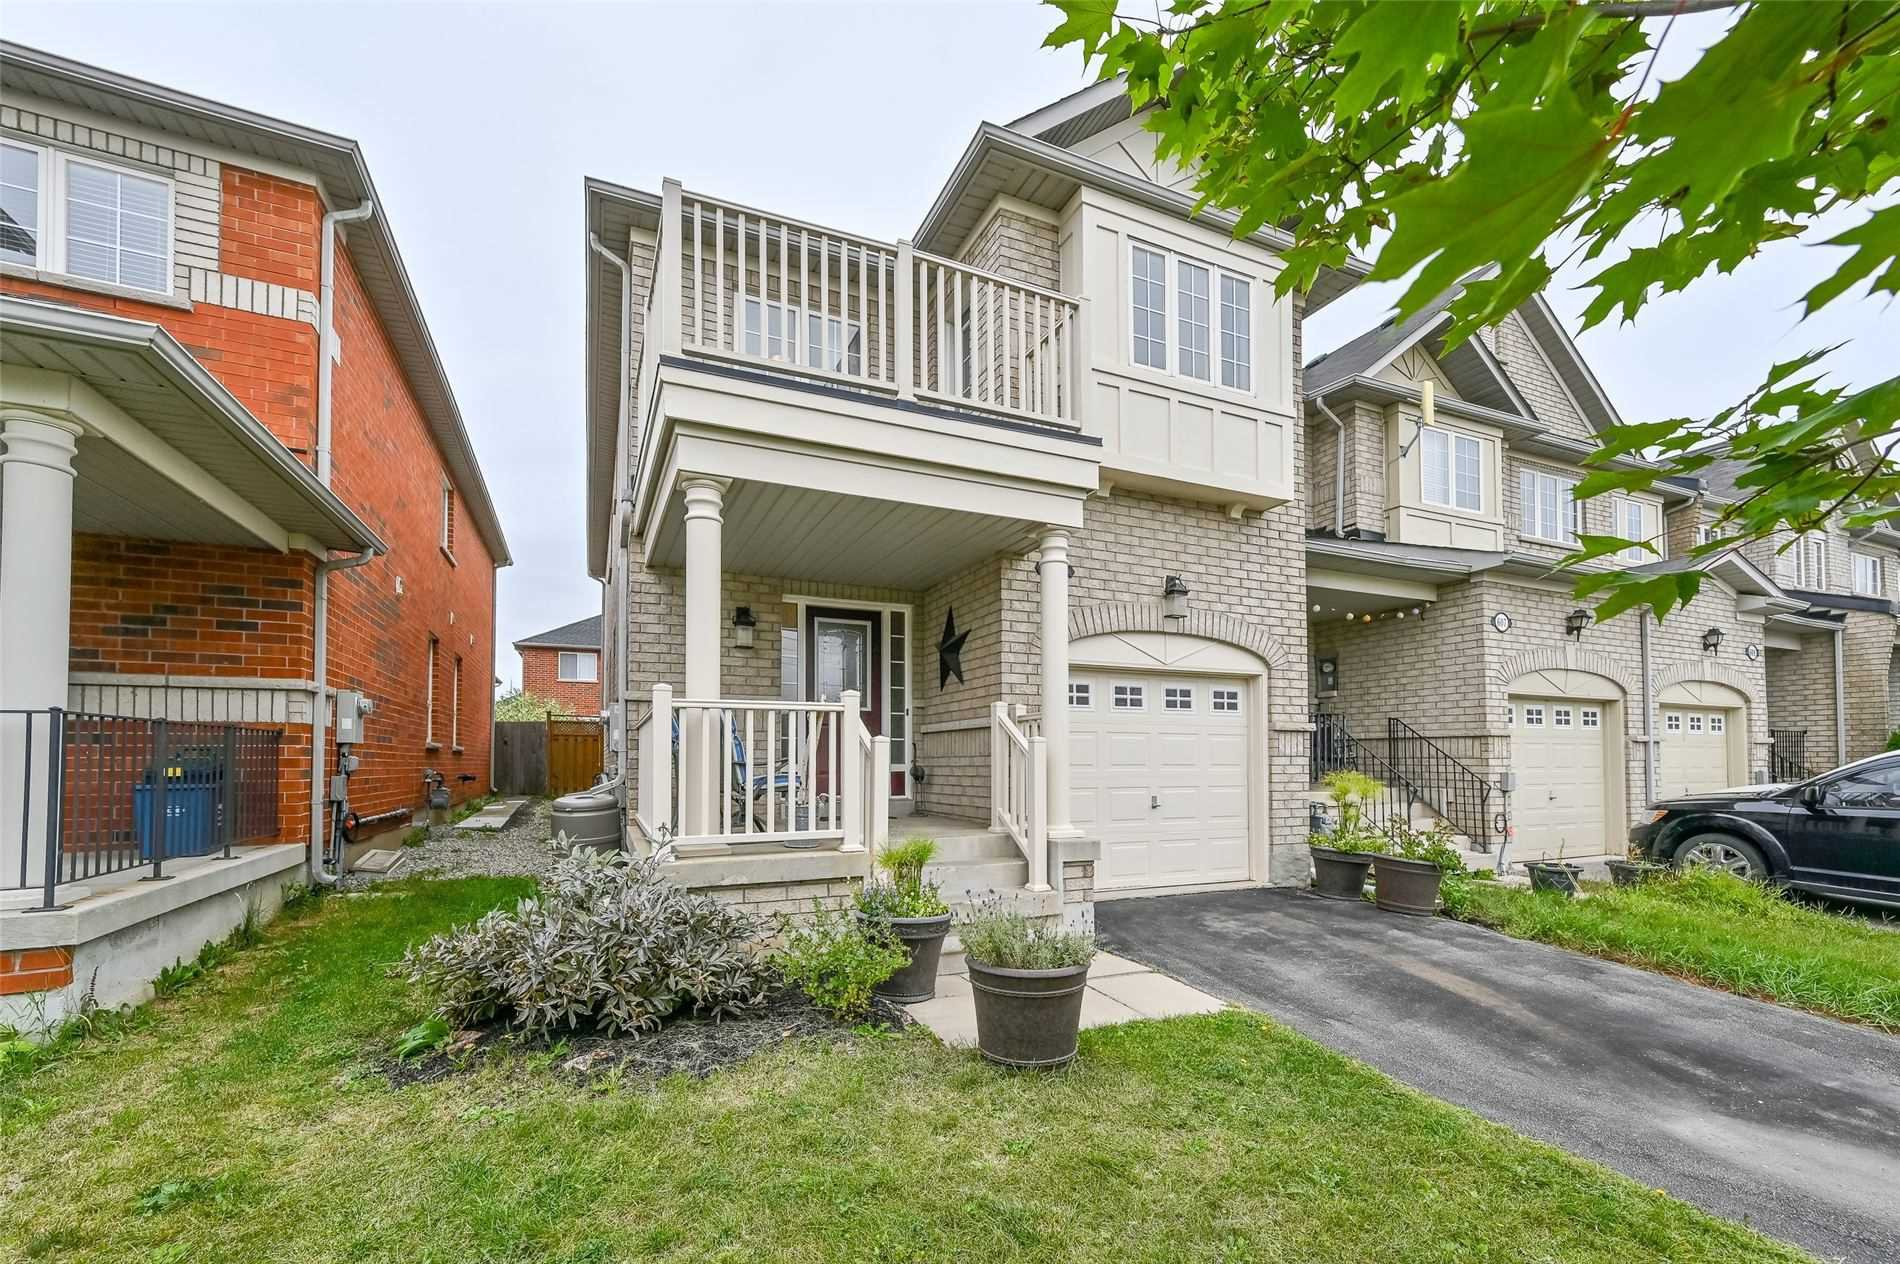 Main Photo: 605 Willmott Crescent in Milton: Clarke House (2-Storey) for sale : MLS®# W4578121